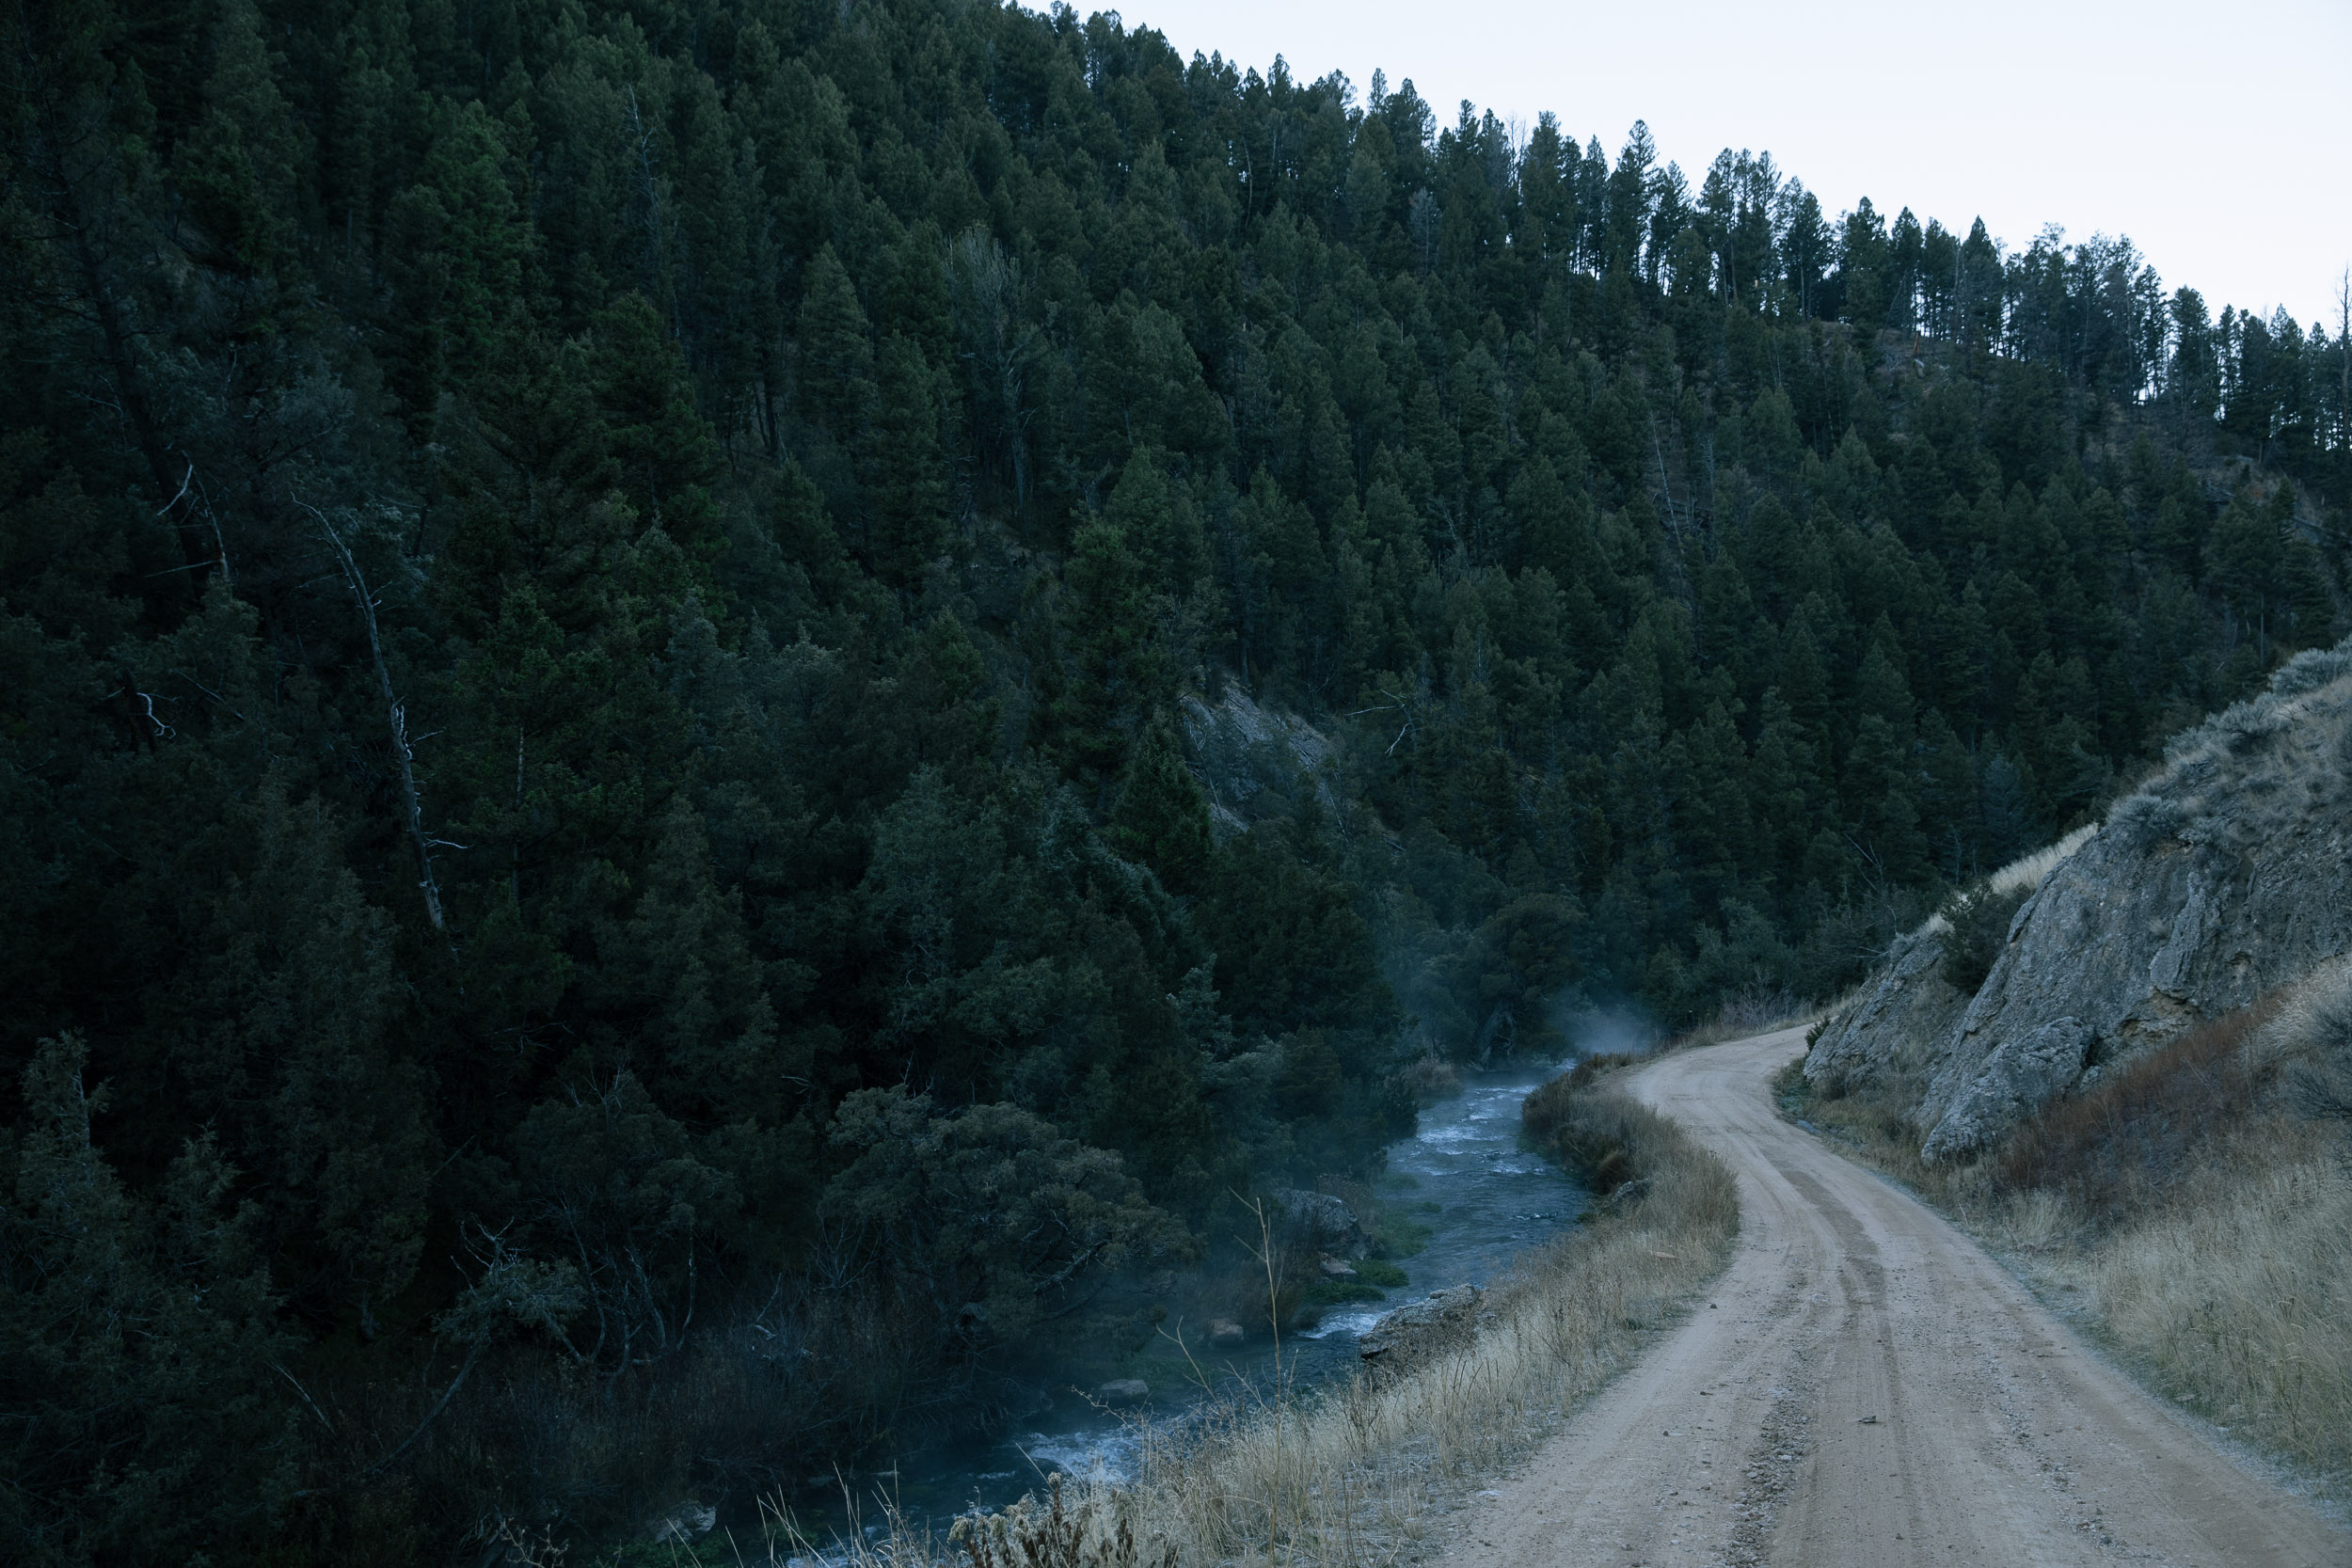 Dirtroad along a river in the mountains with mist